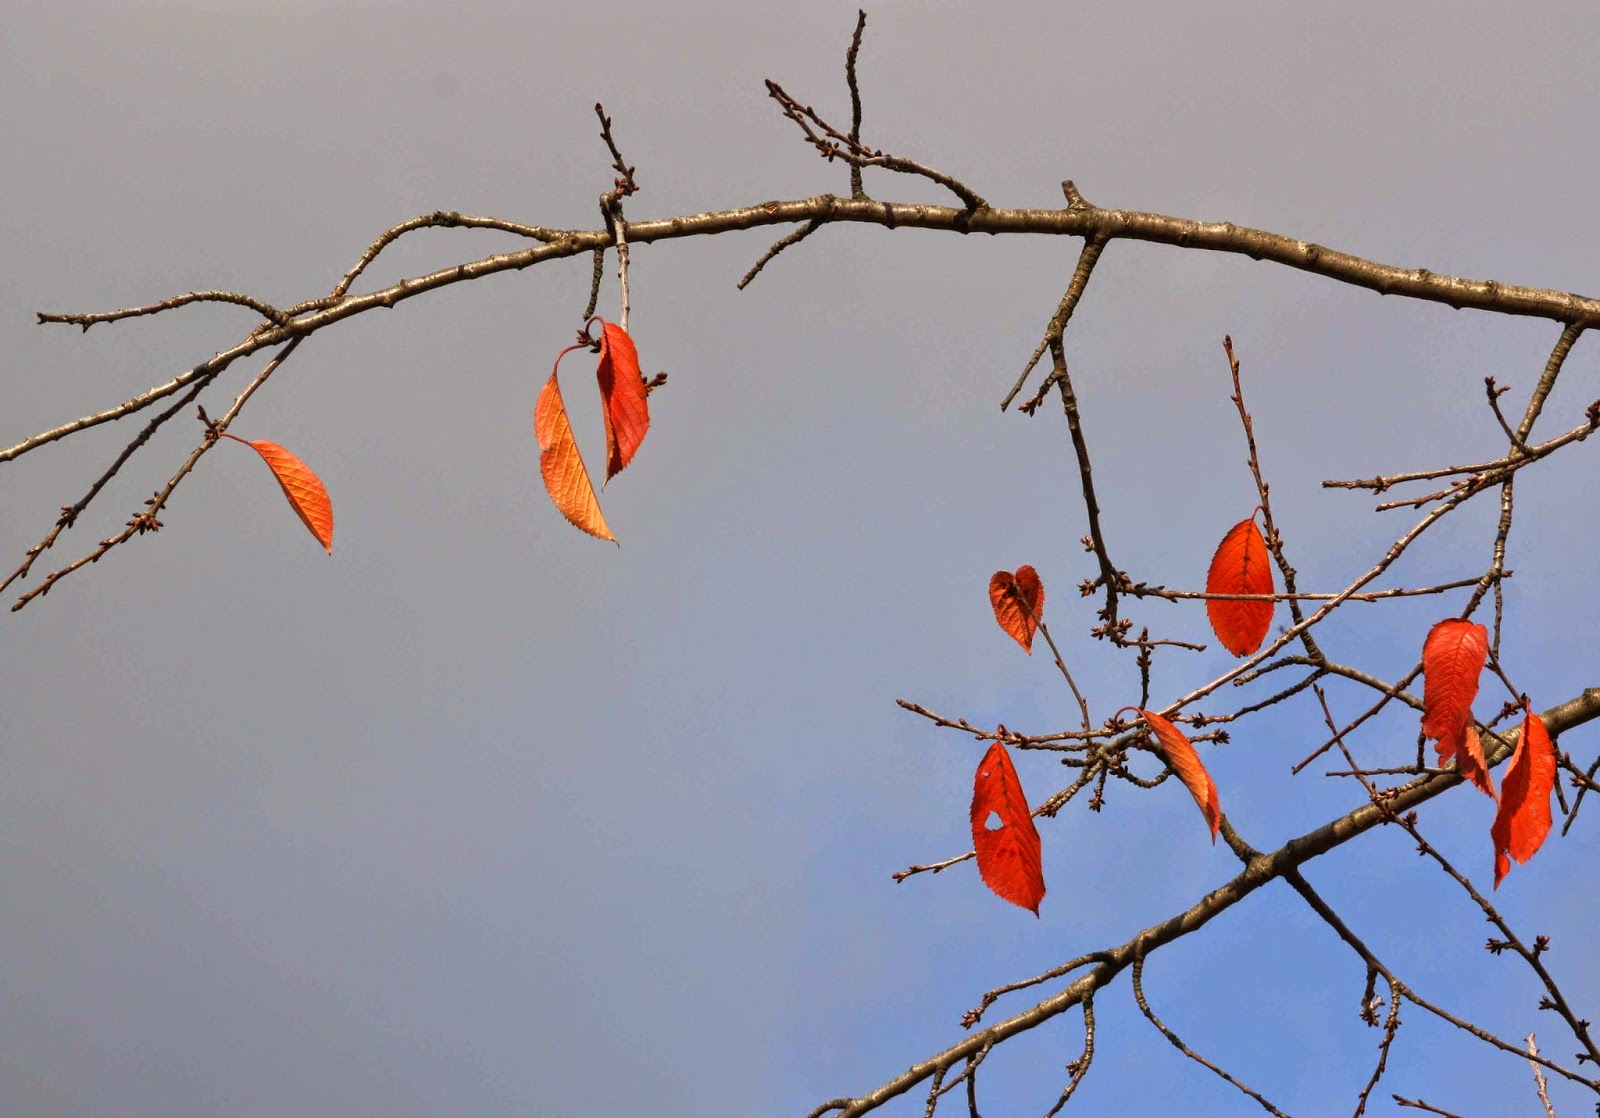 Orange leaves on a branch